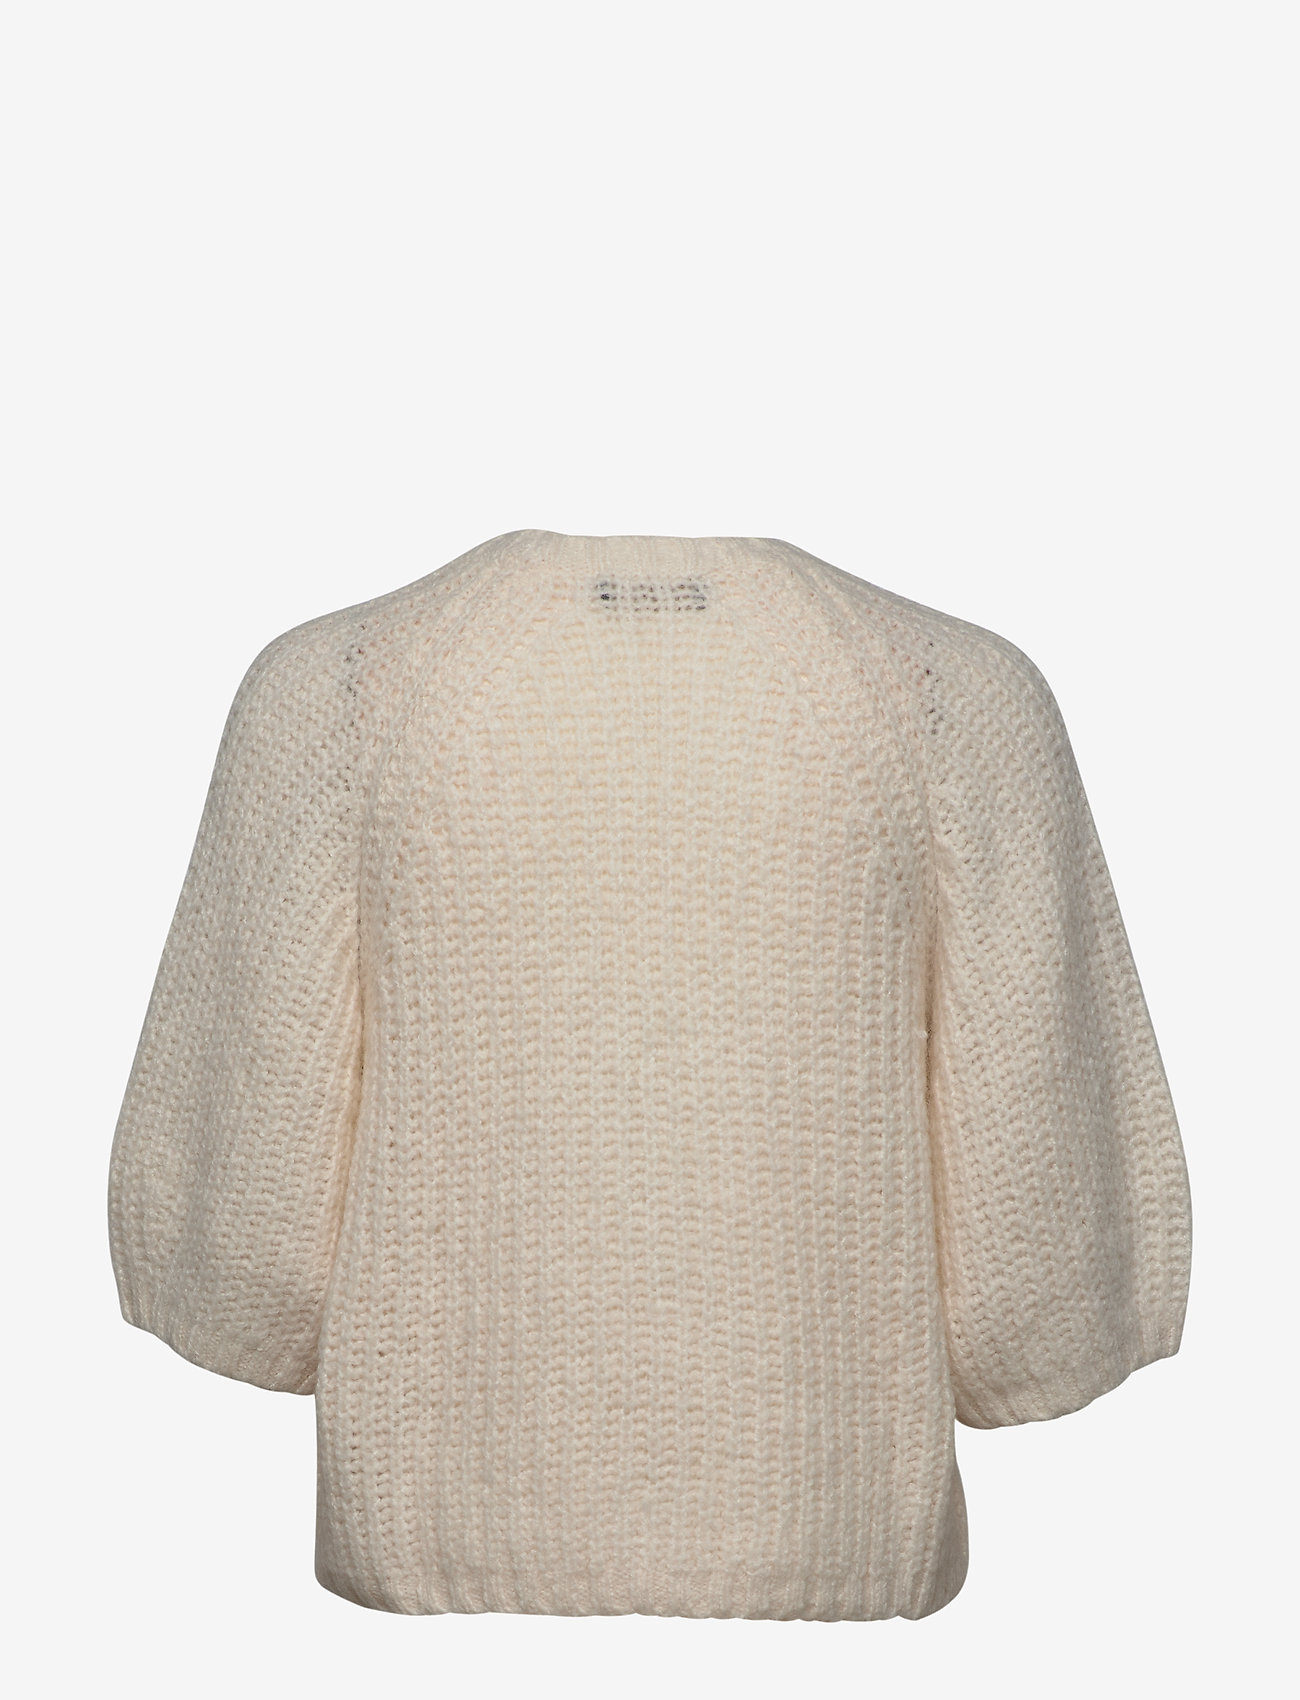 Coralie Knit (Off White) (1399 kr) - Morris Lady pwkQivsV